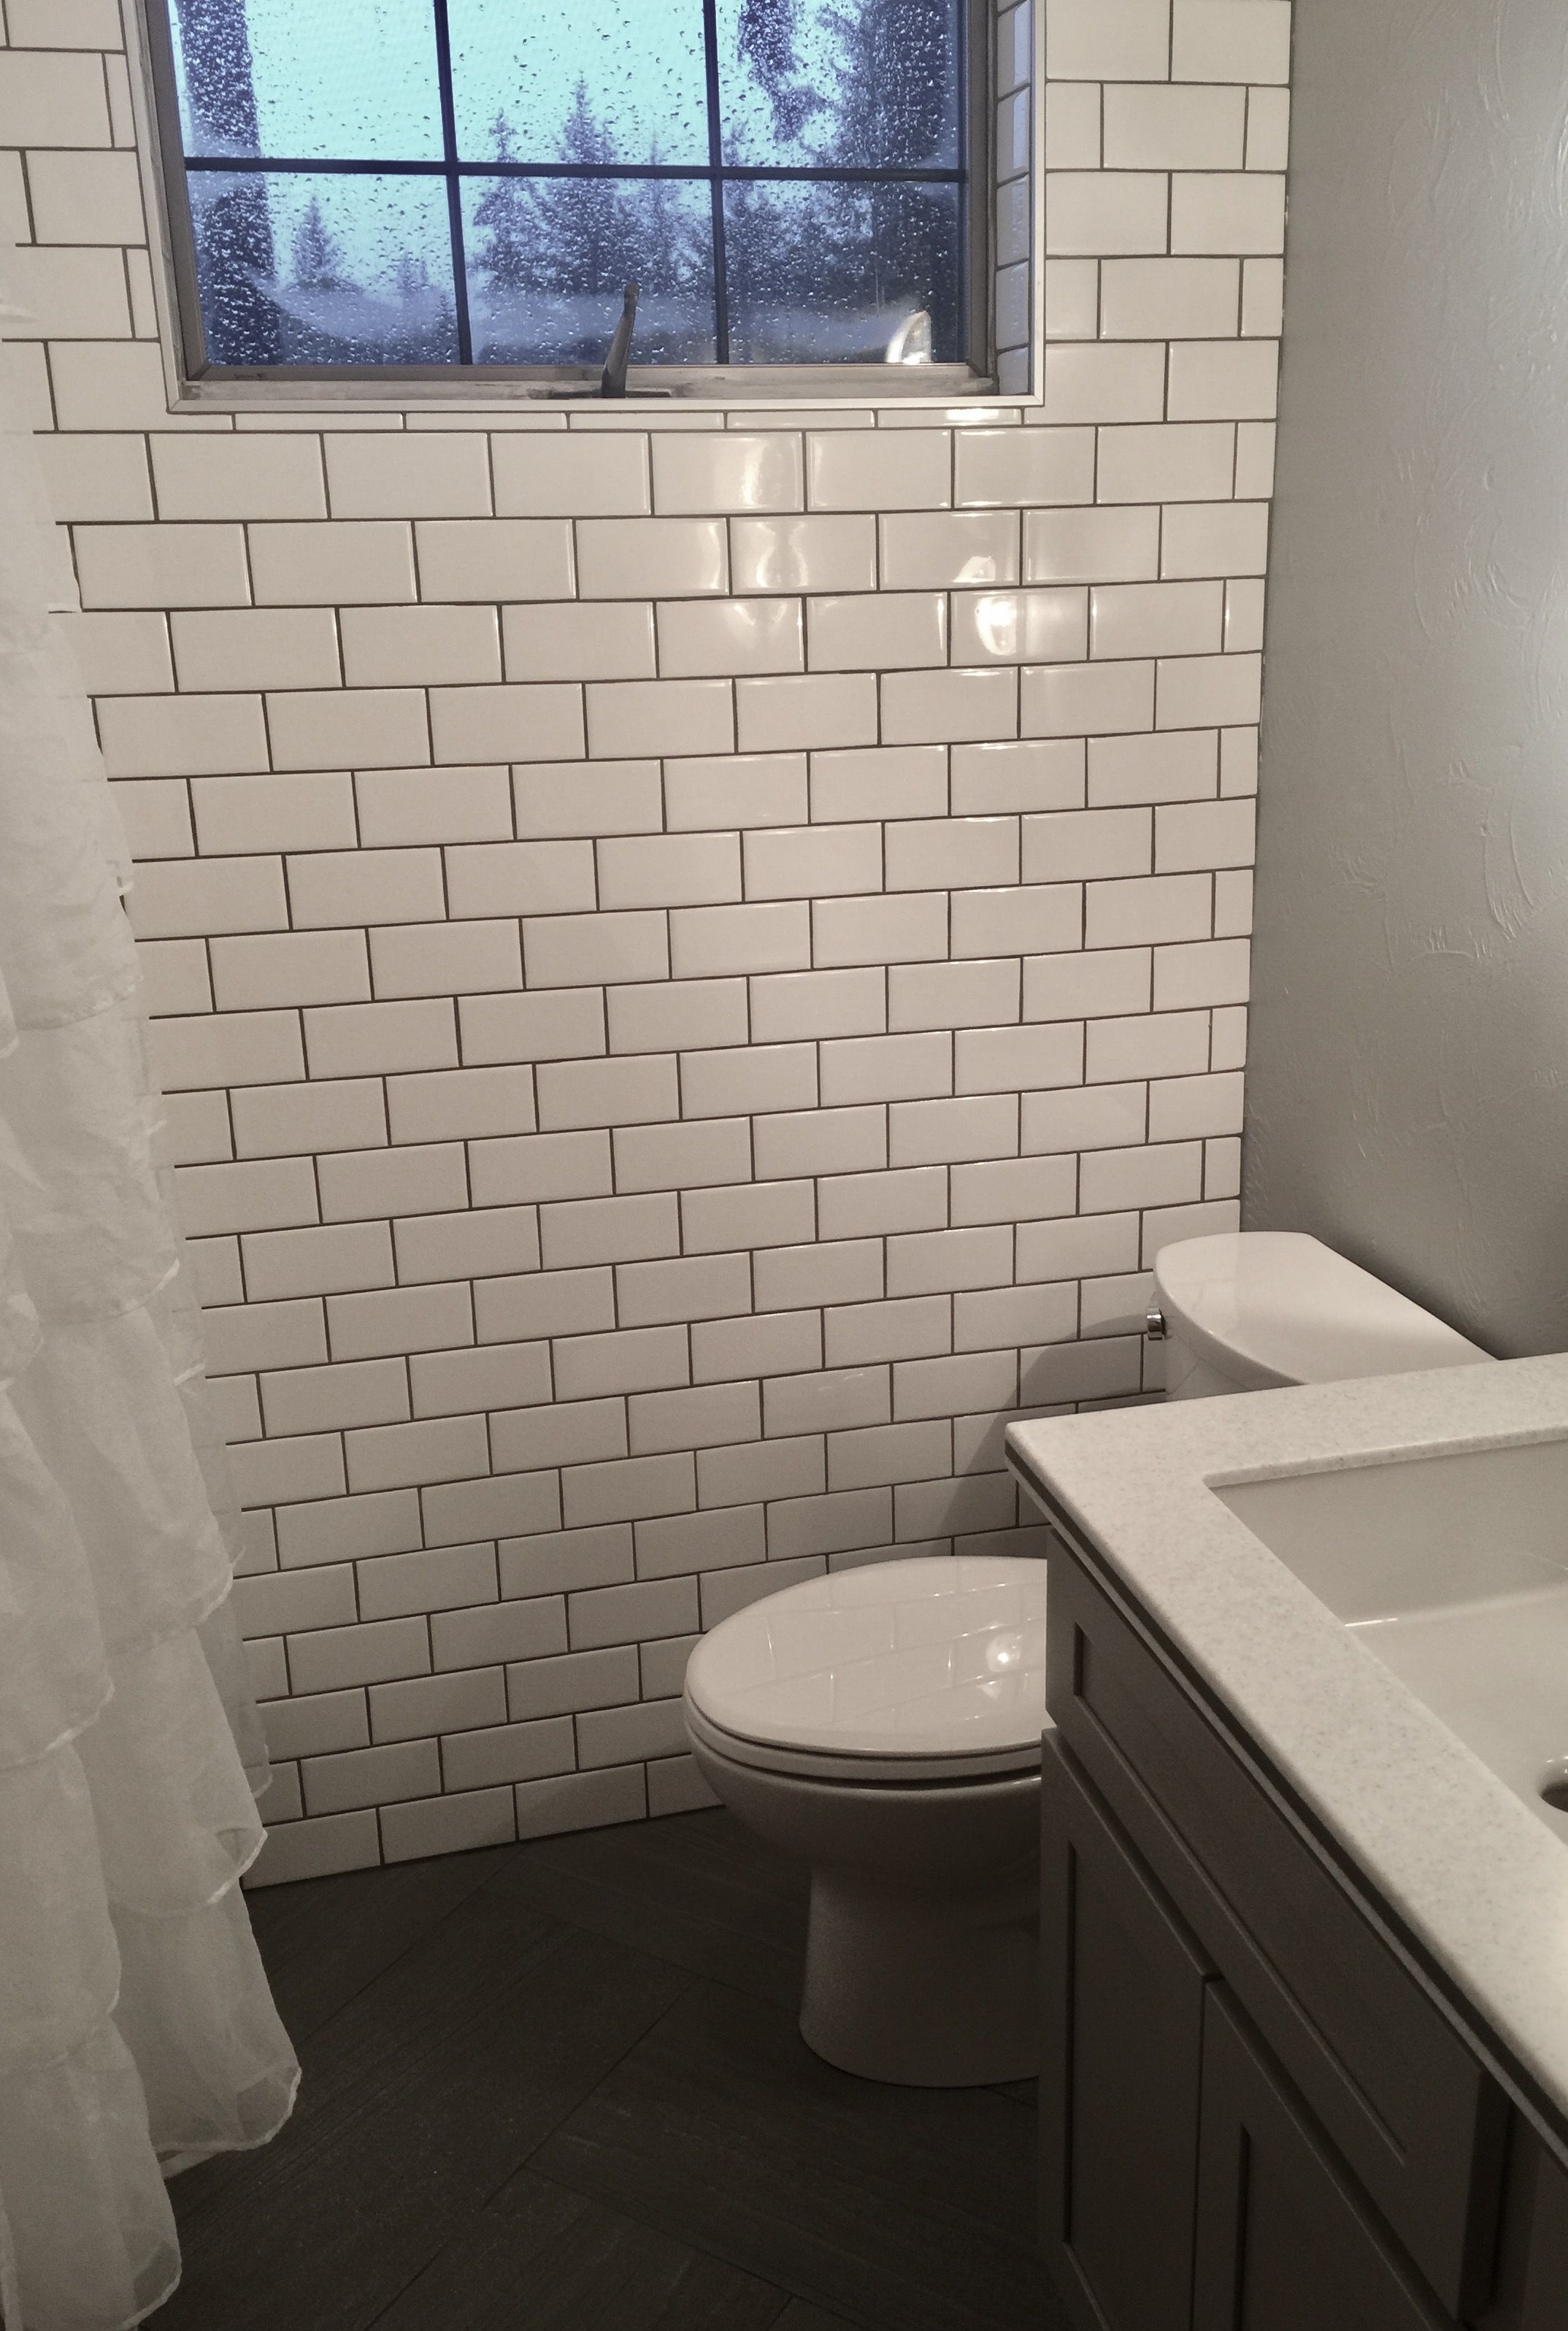 Subway tile. Window. Small Bathroom. grey and white | Bed, Bath ...